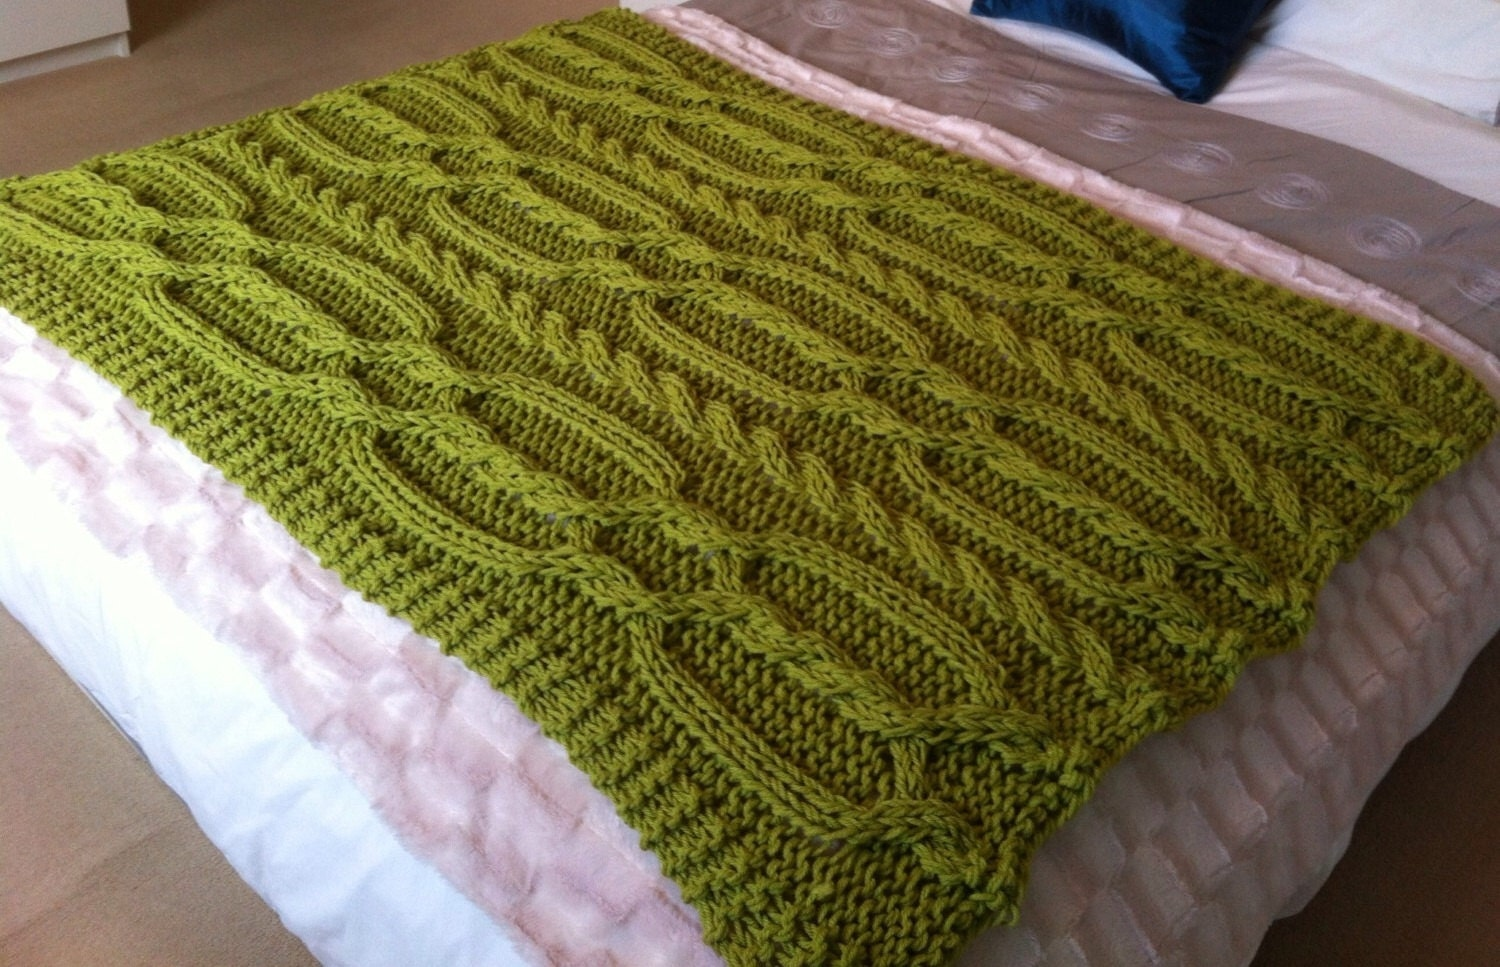 Knitting Pattern Blanket Throw : Snuggly Cable Blanket / Throw. Knitting pattern